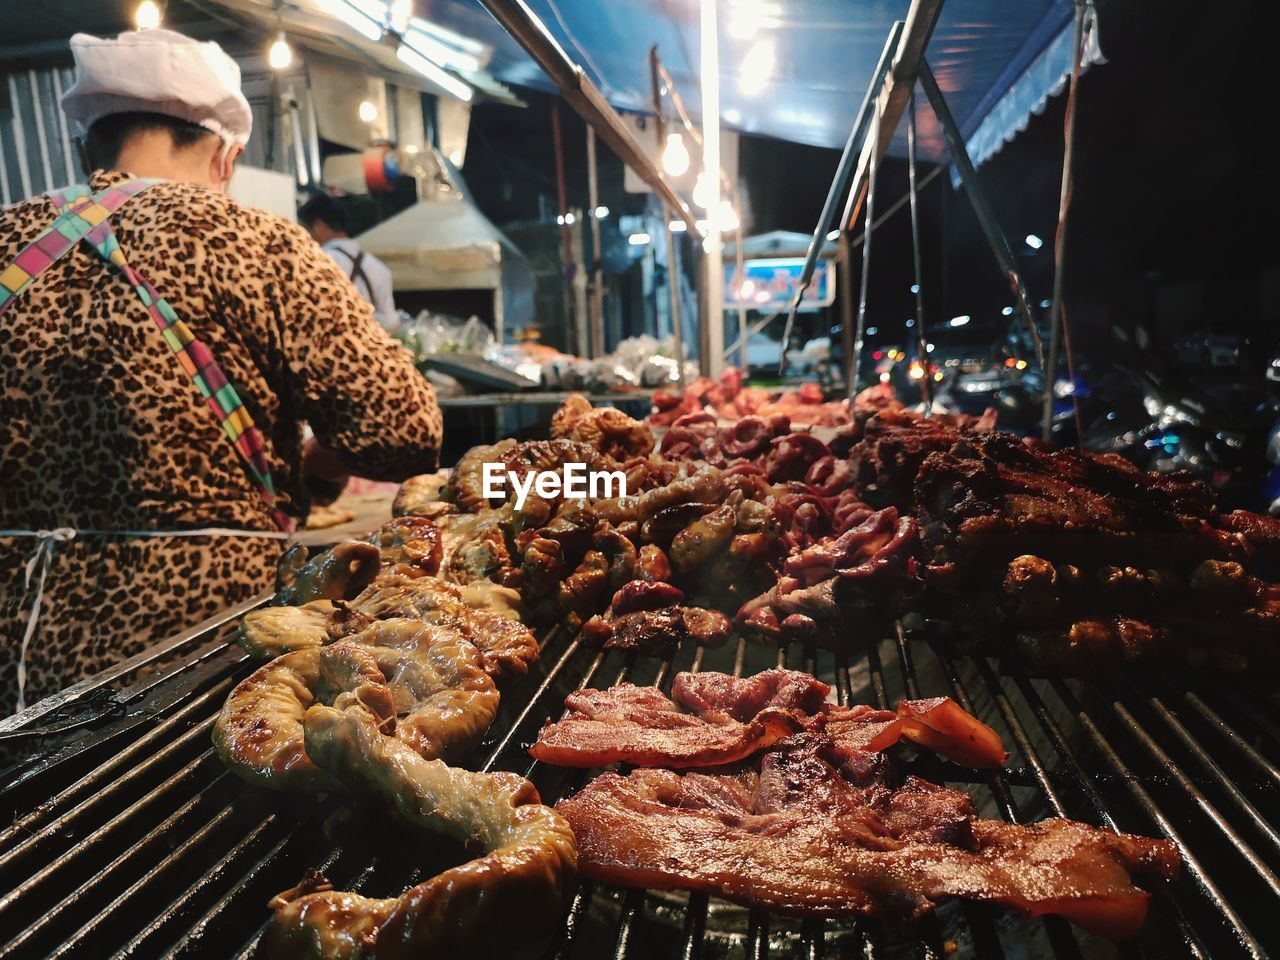 food, food and drink, freshness, meat, real people, preparation, market, night, one person, for sale, barbecue, business, retail, choice, incidental people, smoke - physical structure, variation, abundance, grilled, preparing food, street food, retail display